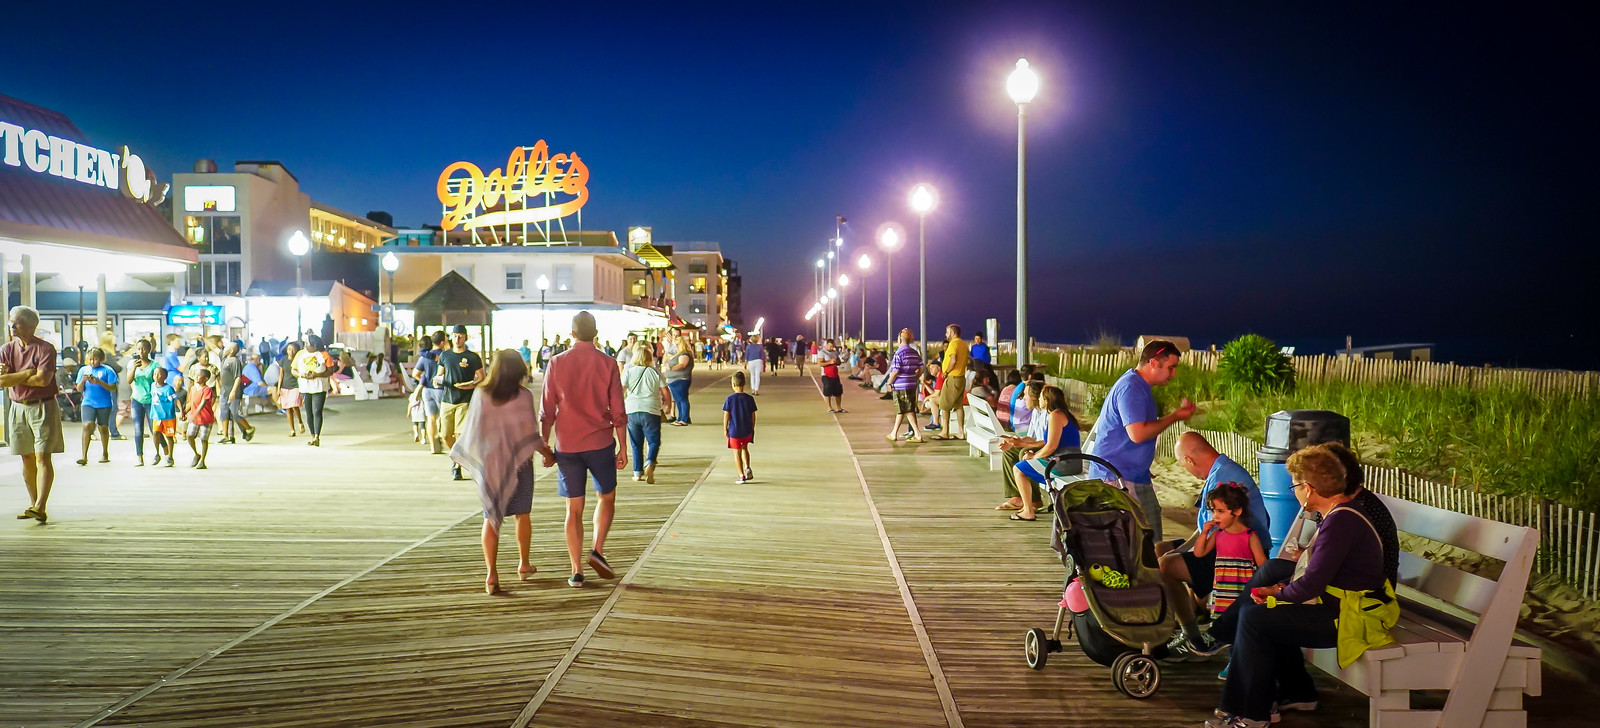 2017.06.04 Rehoboth Beach People and Places, Delaware USA 5859